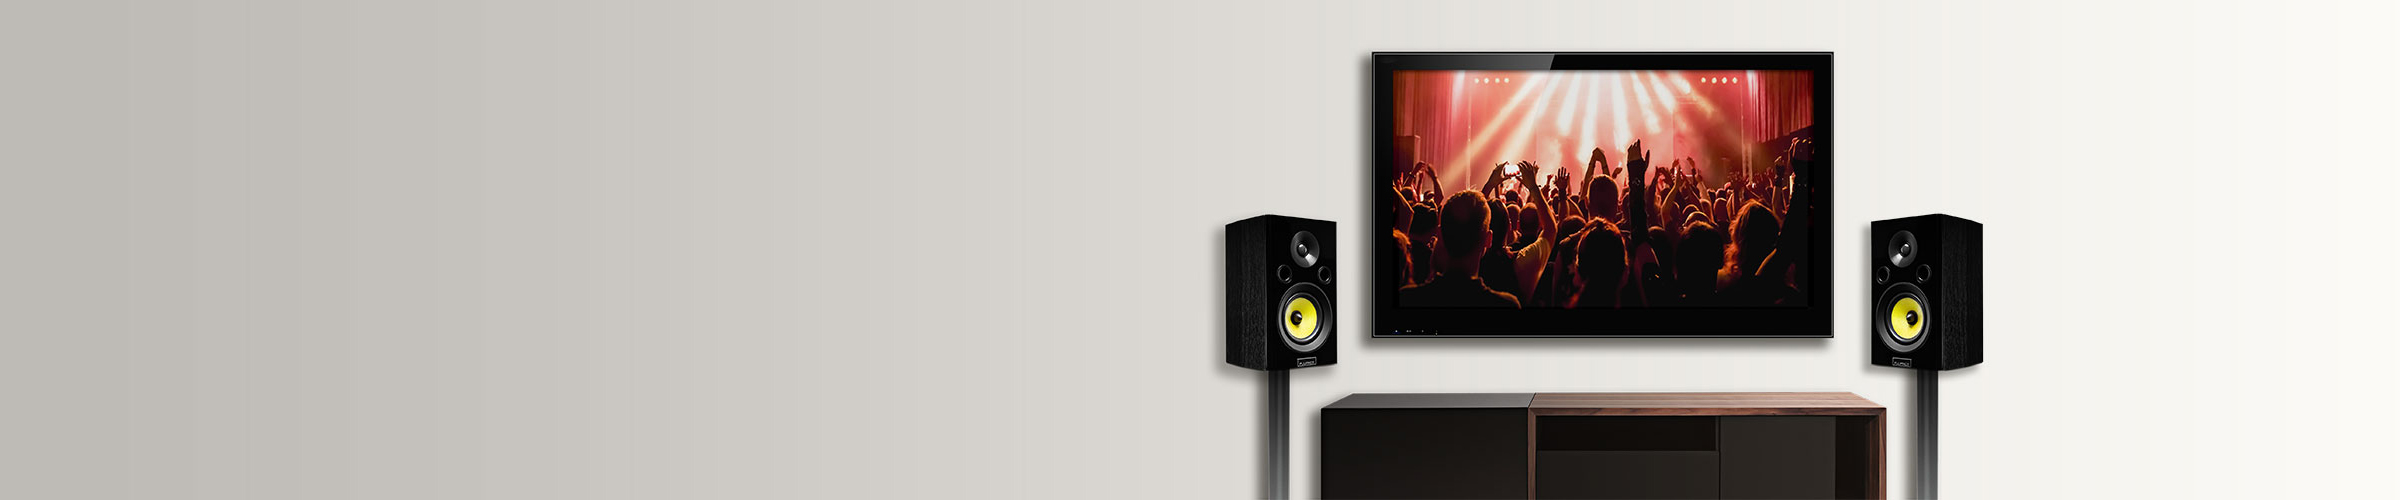 Fluance signature series surround sound speakers features